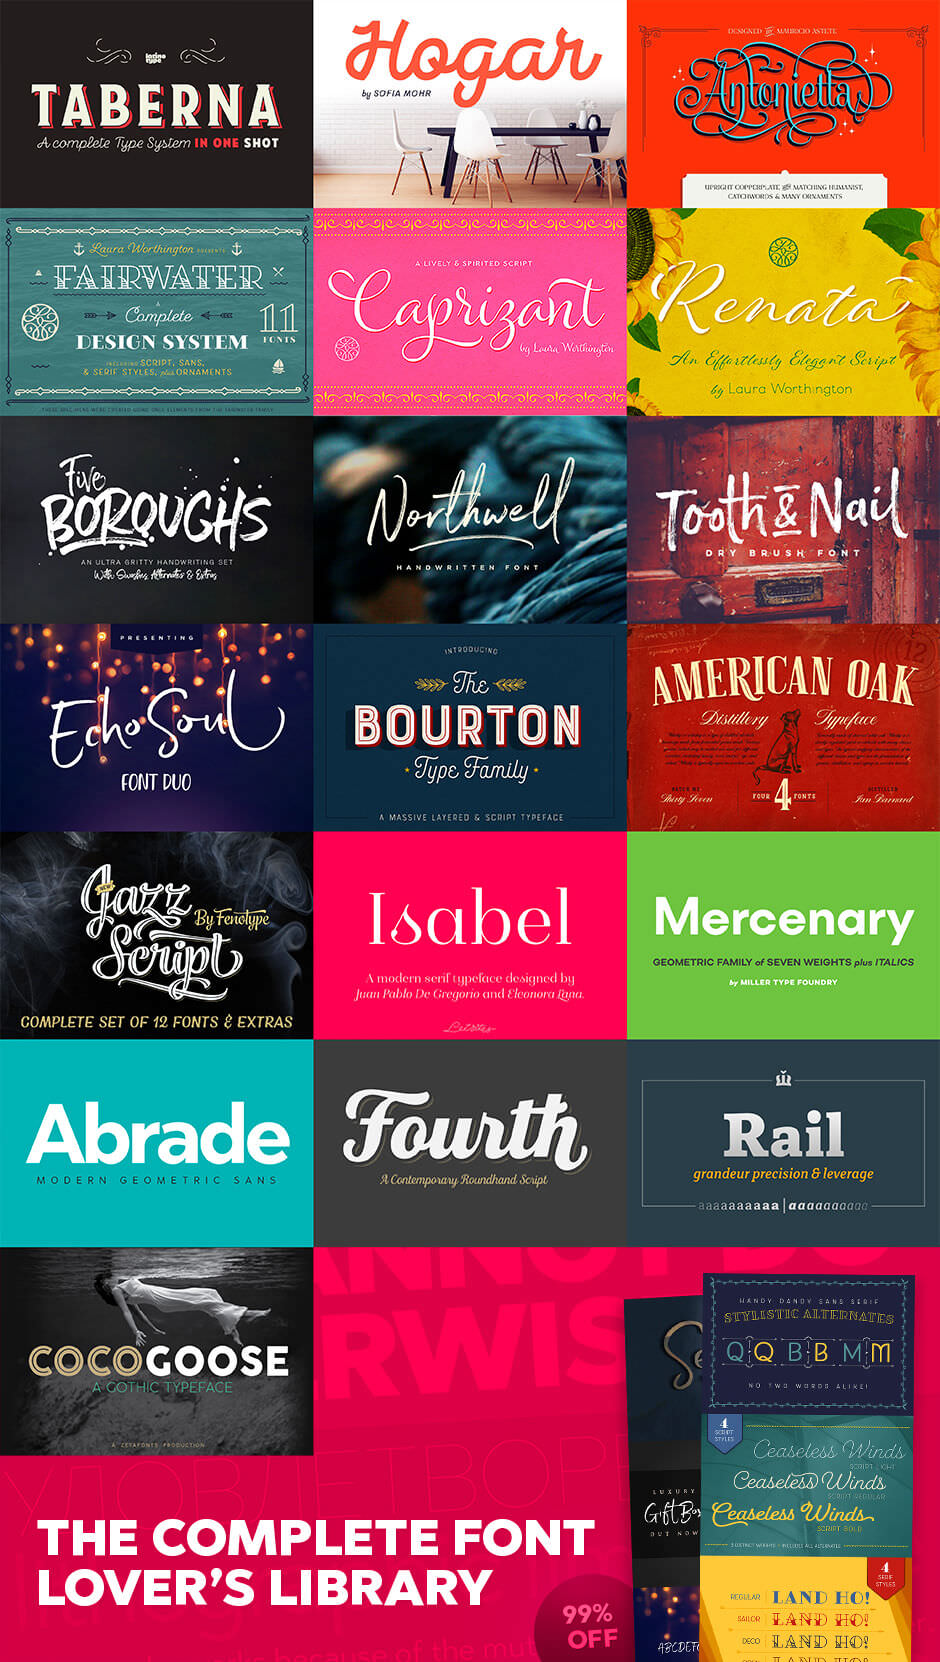 complete-font-lovers-library-grid